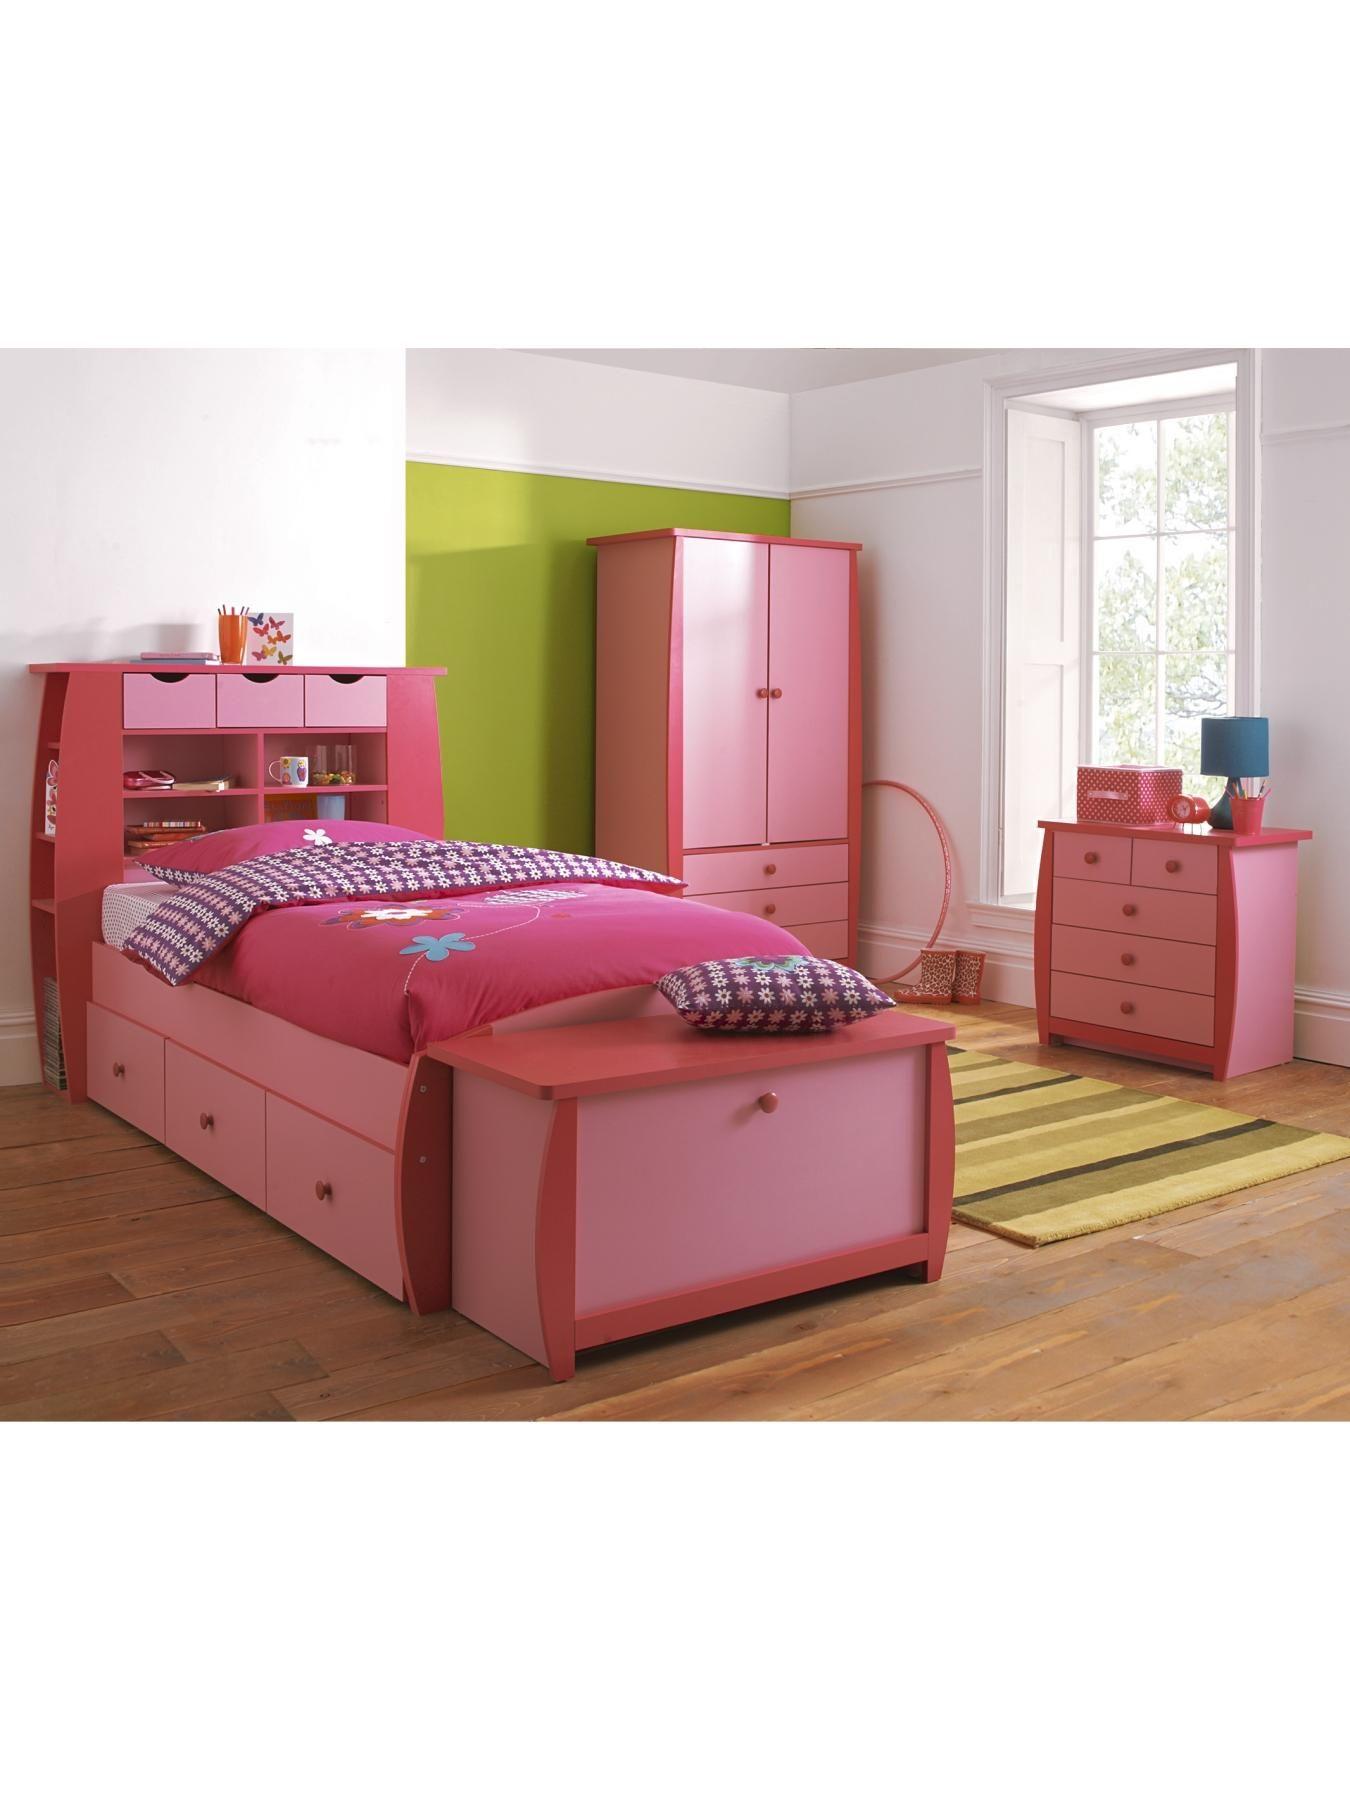 Beau Orlando Kids 2 Door, 3 Drawer Wardrobe With Optional Home Assembly Service*  Childrenu0027s Bedroom Furniture Is More Fun With Our Orlando Collection.